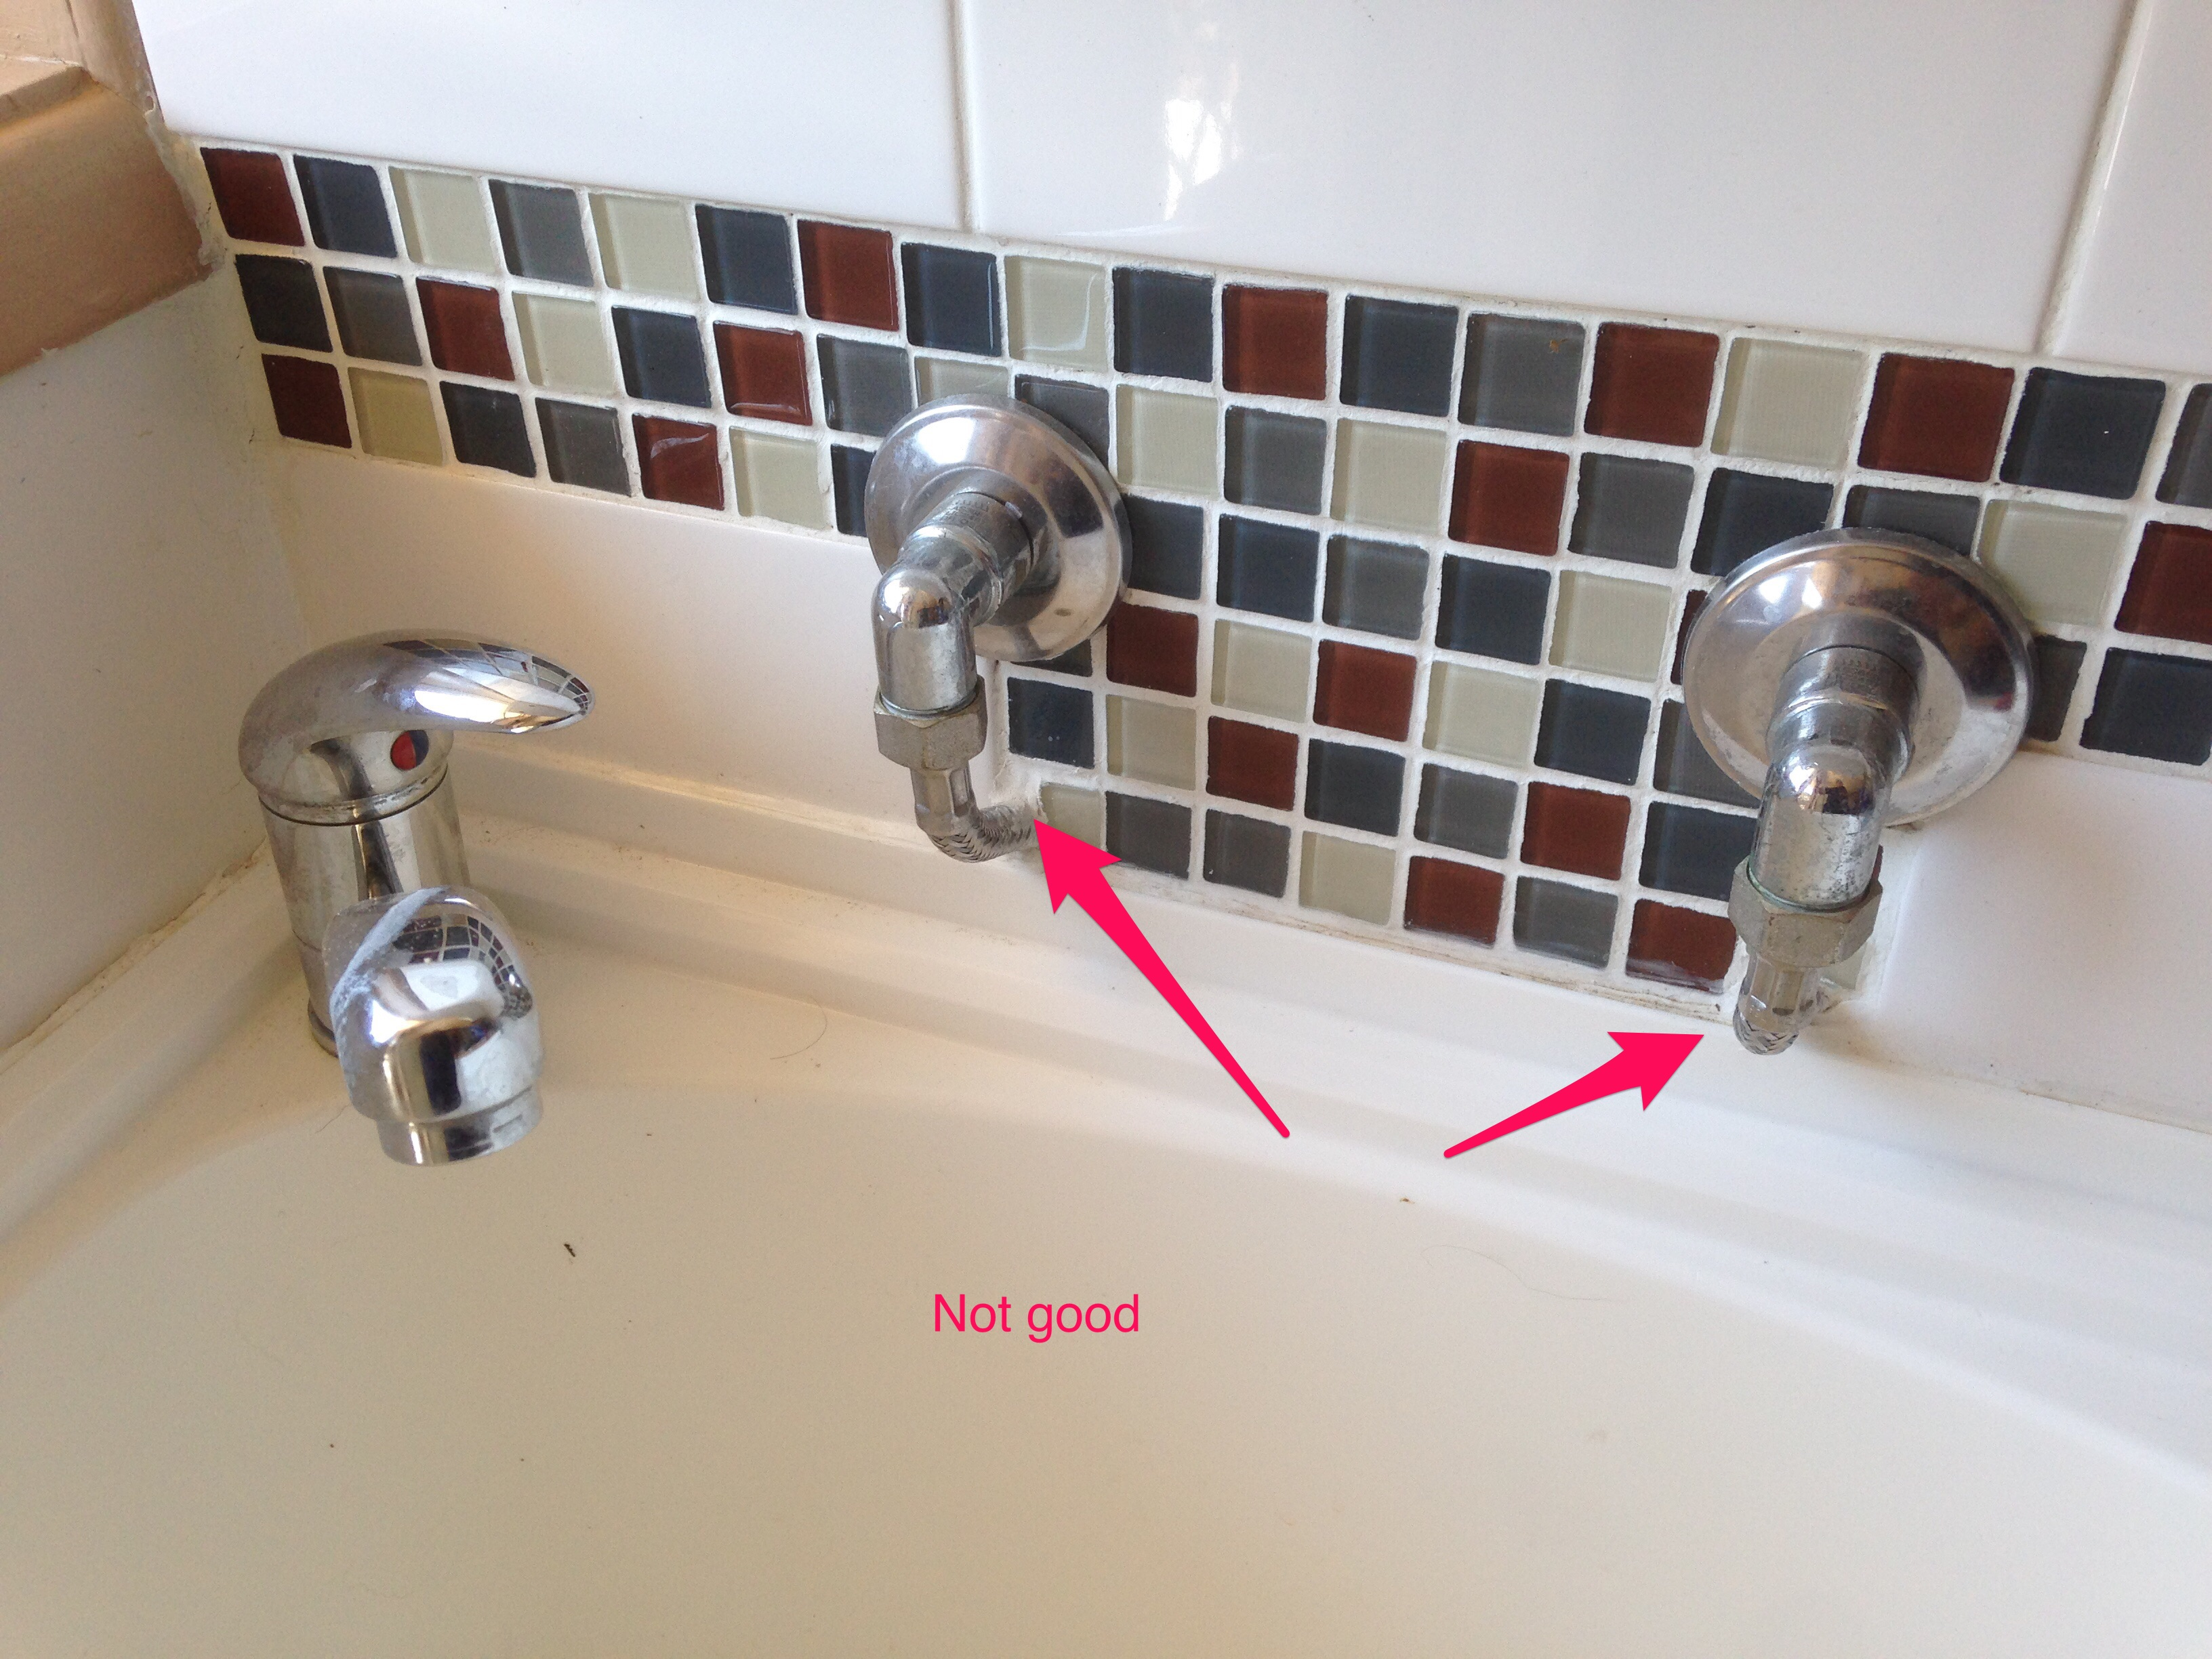 Do it yourself tap disaster taps toilets geelong tomlinson plumbing taps toilets geelong do it yourself solutioingenieria Images